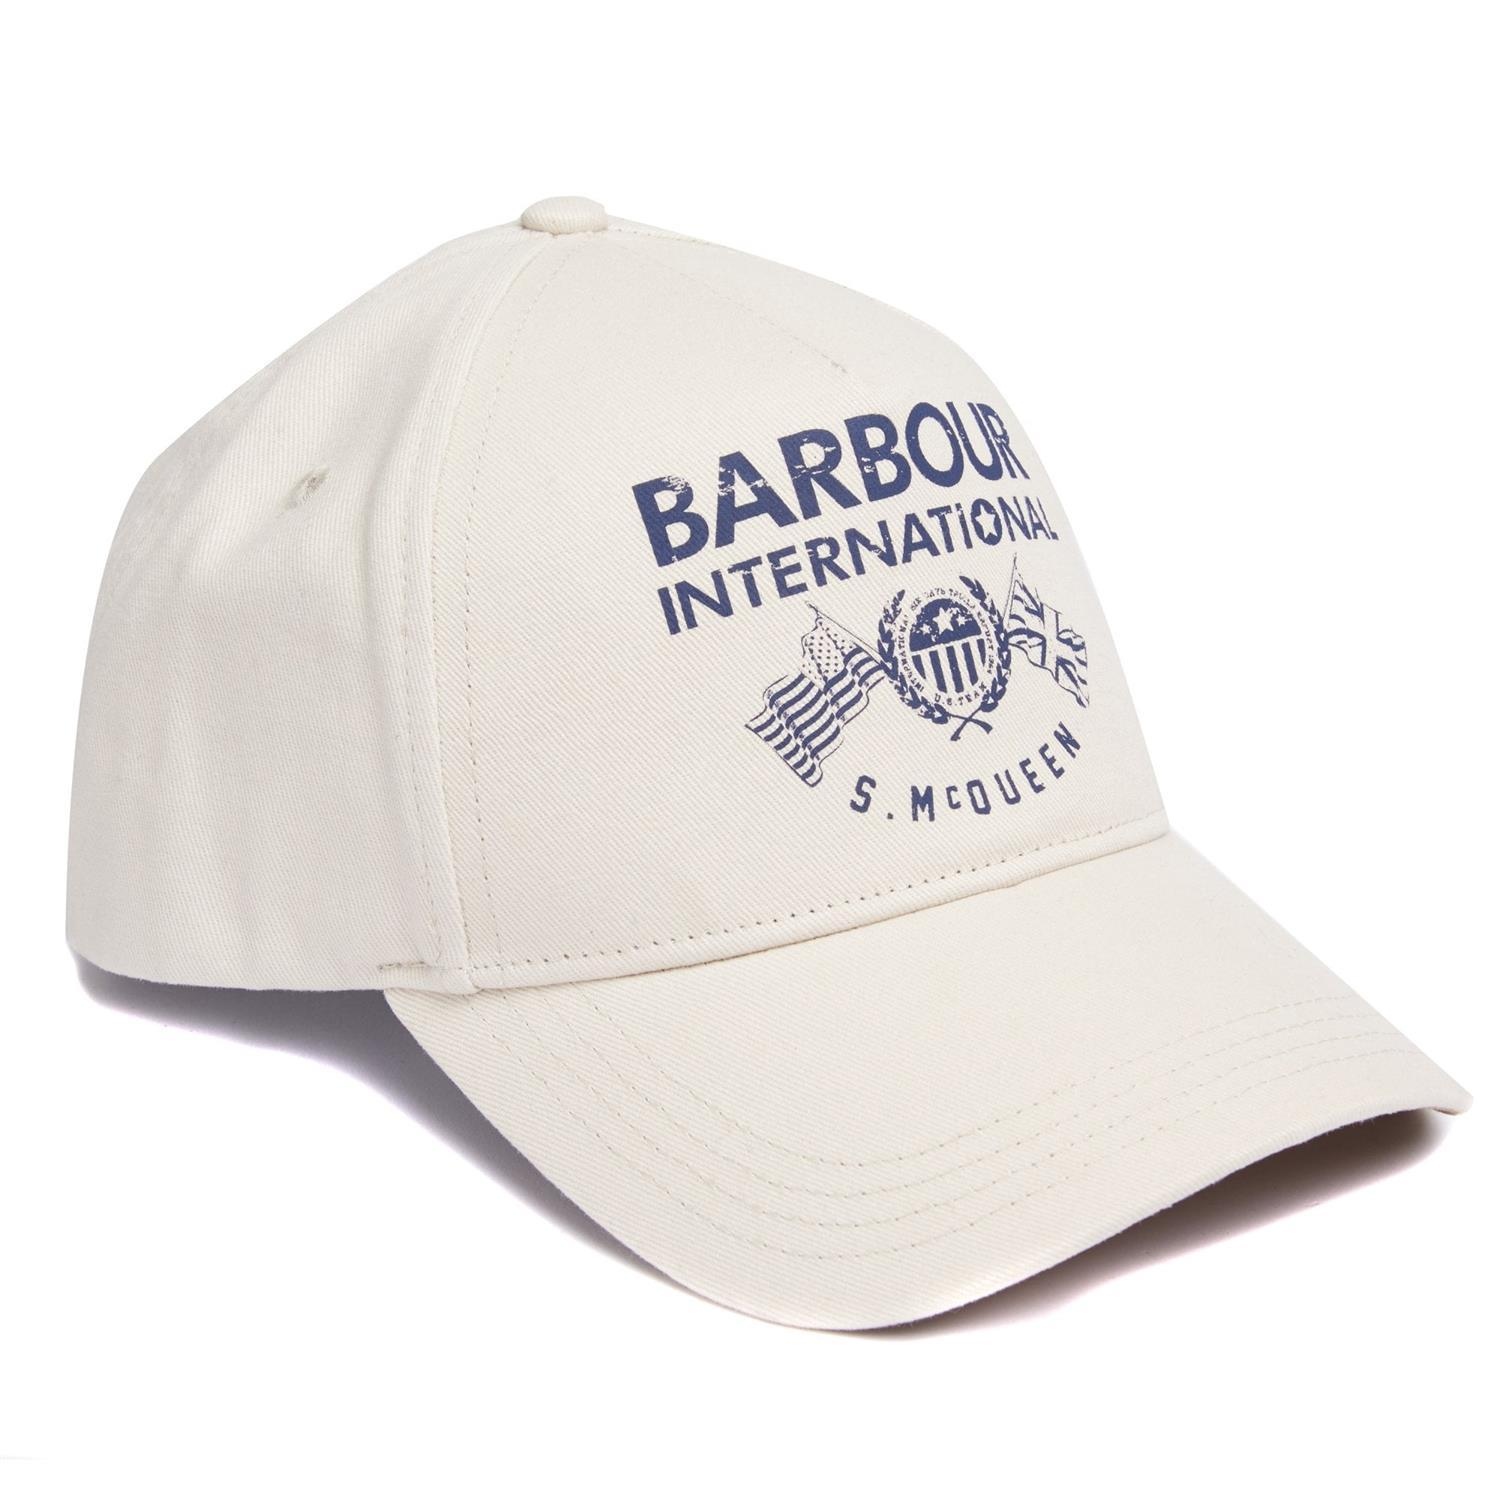 Barbour stroker Sports Cap-Barbour-www.gunnaroye.no